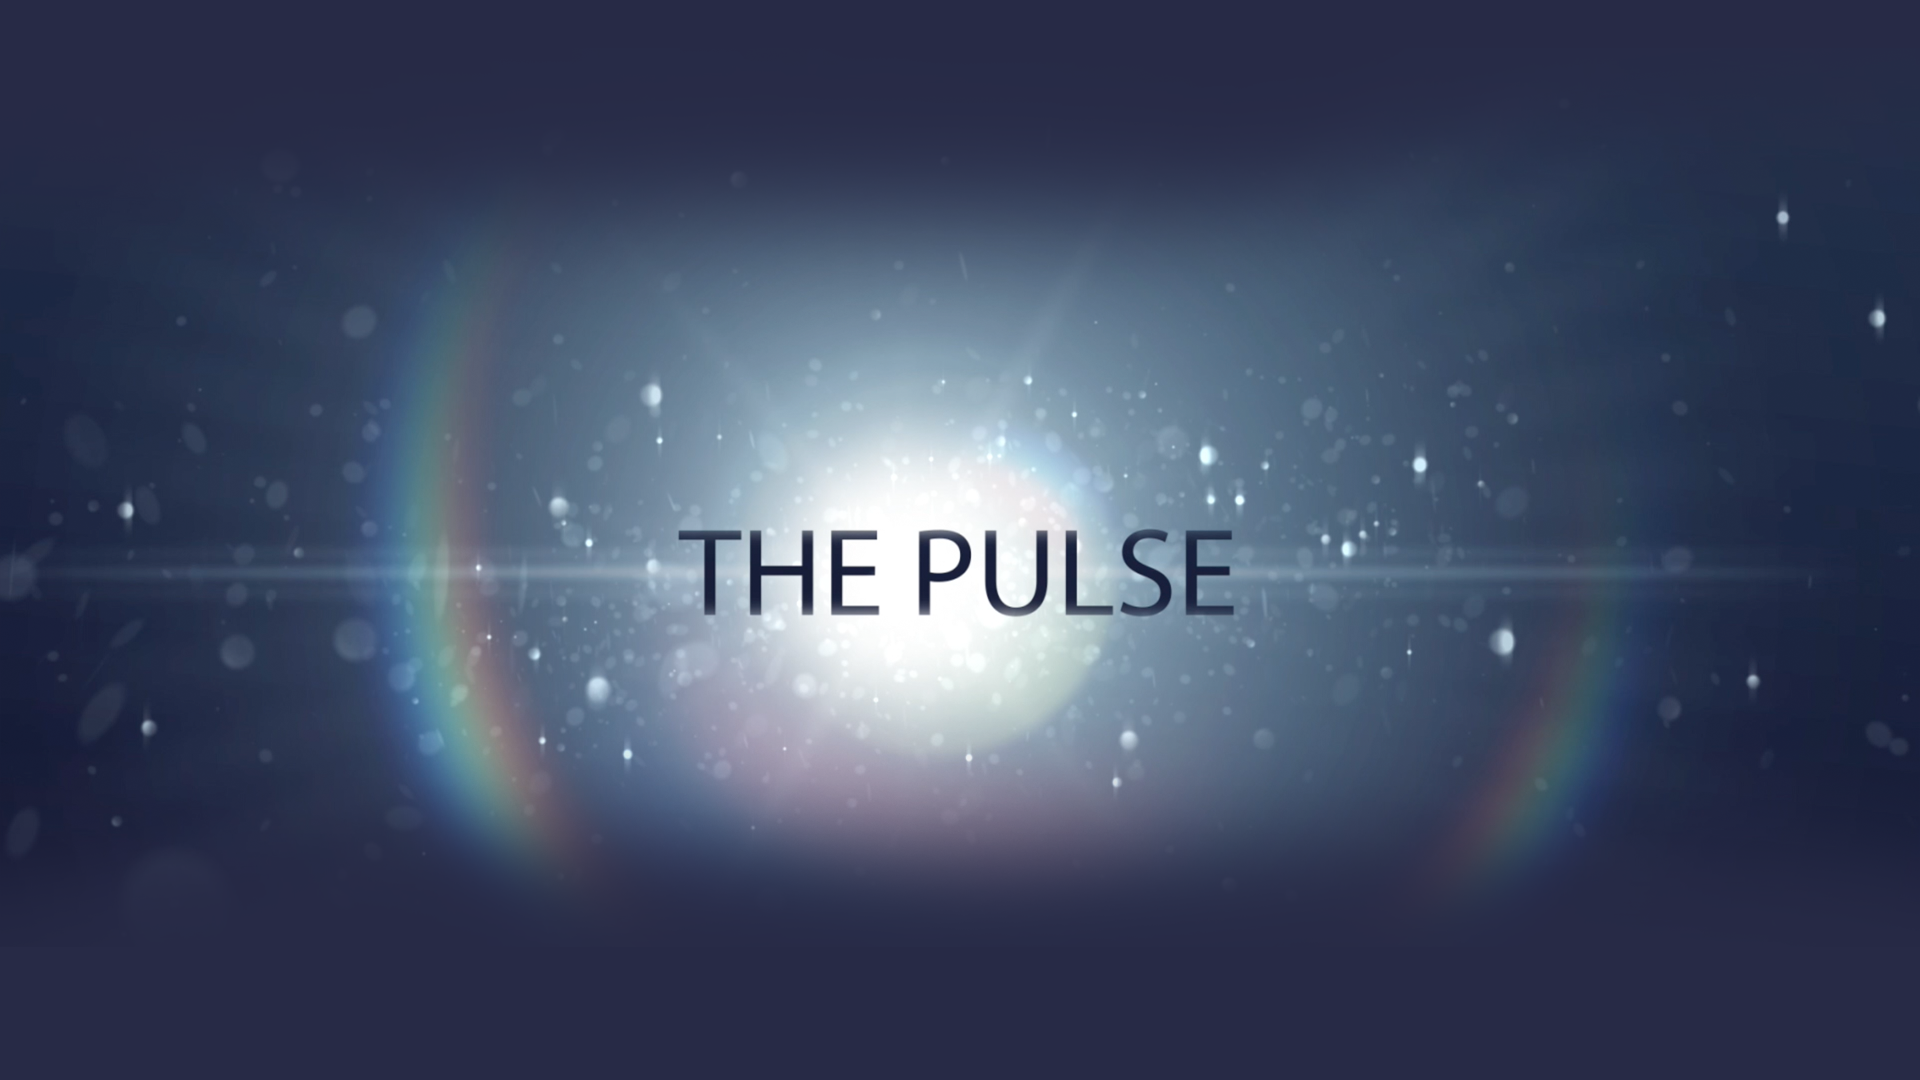 The Pulse Episode 1